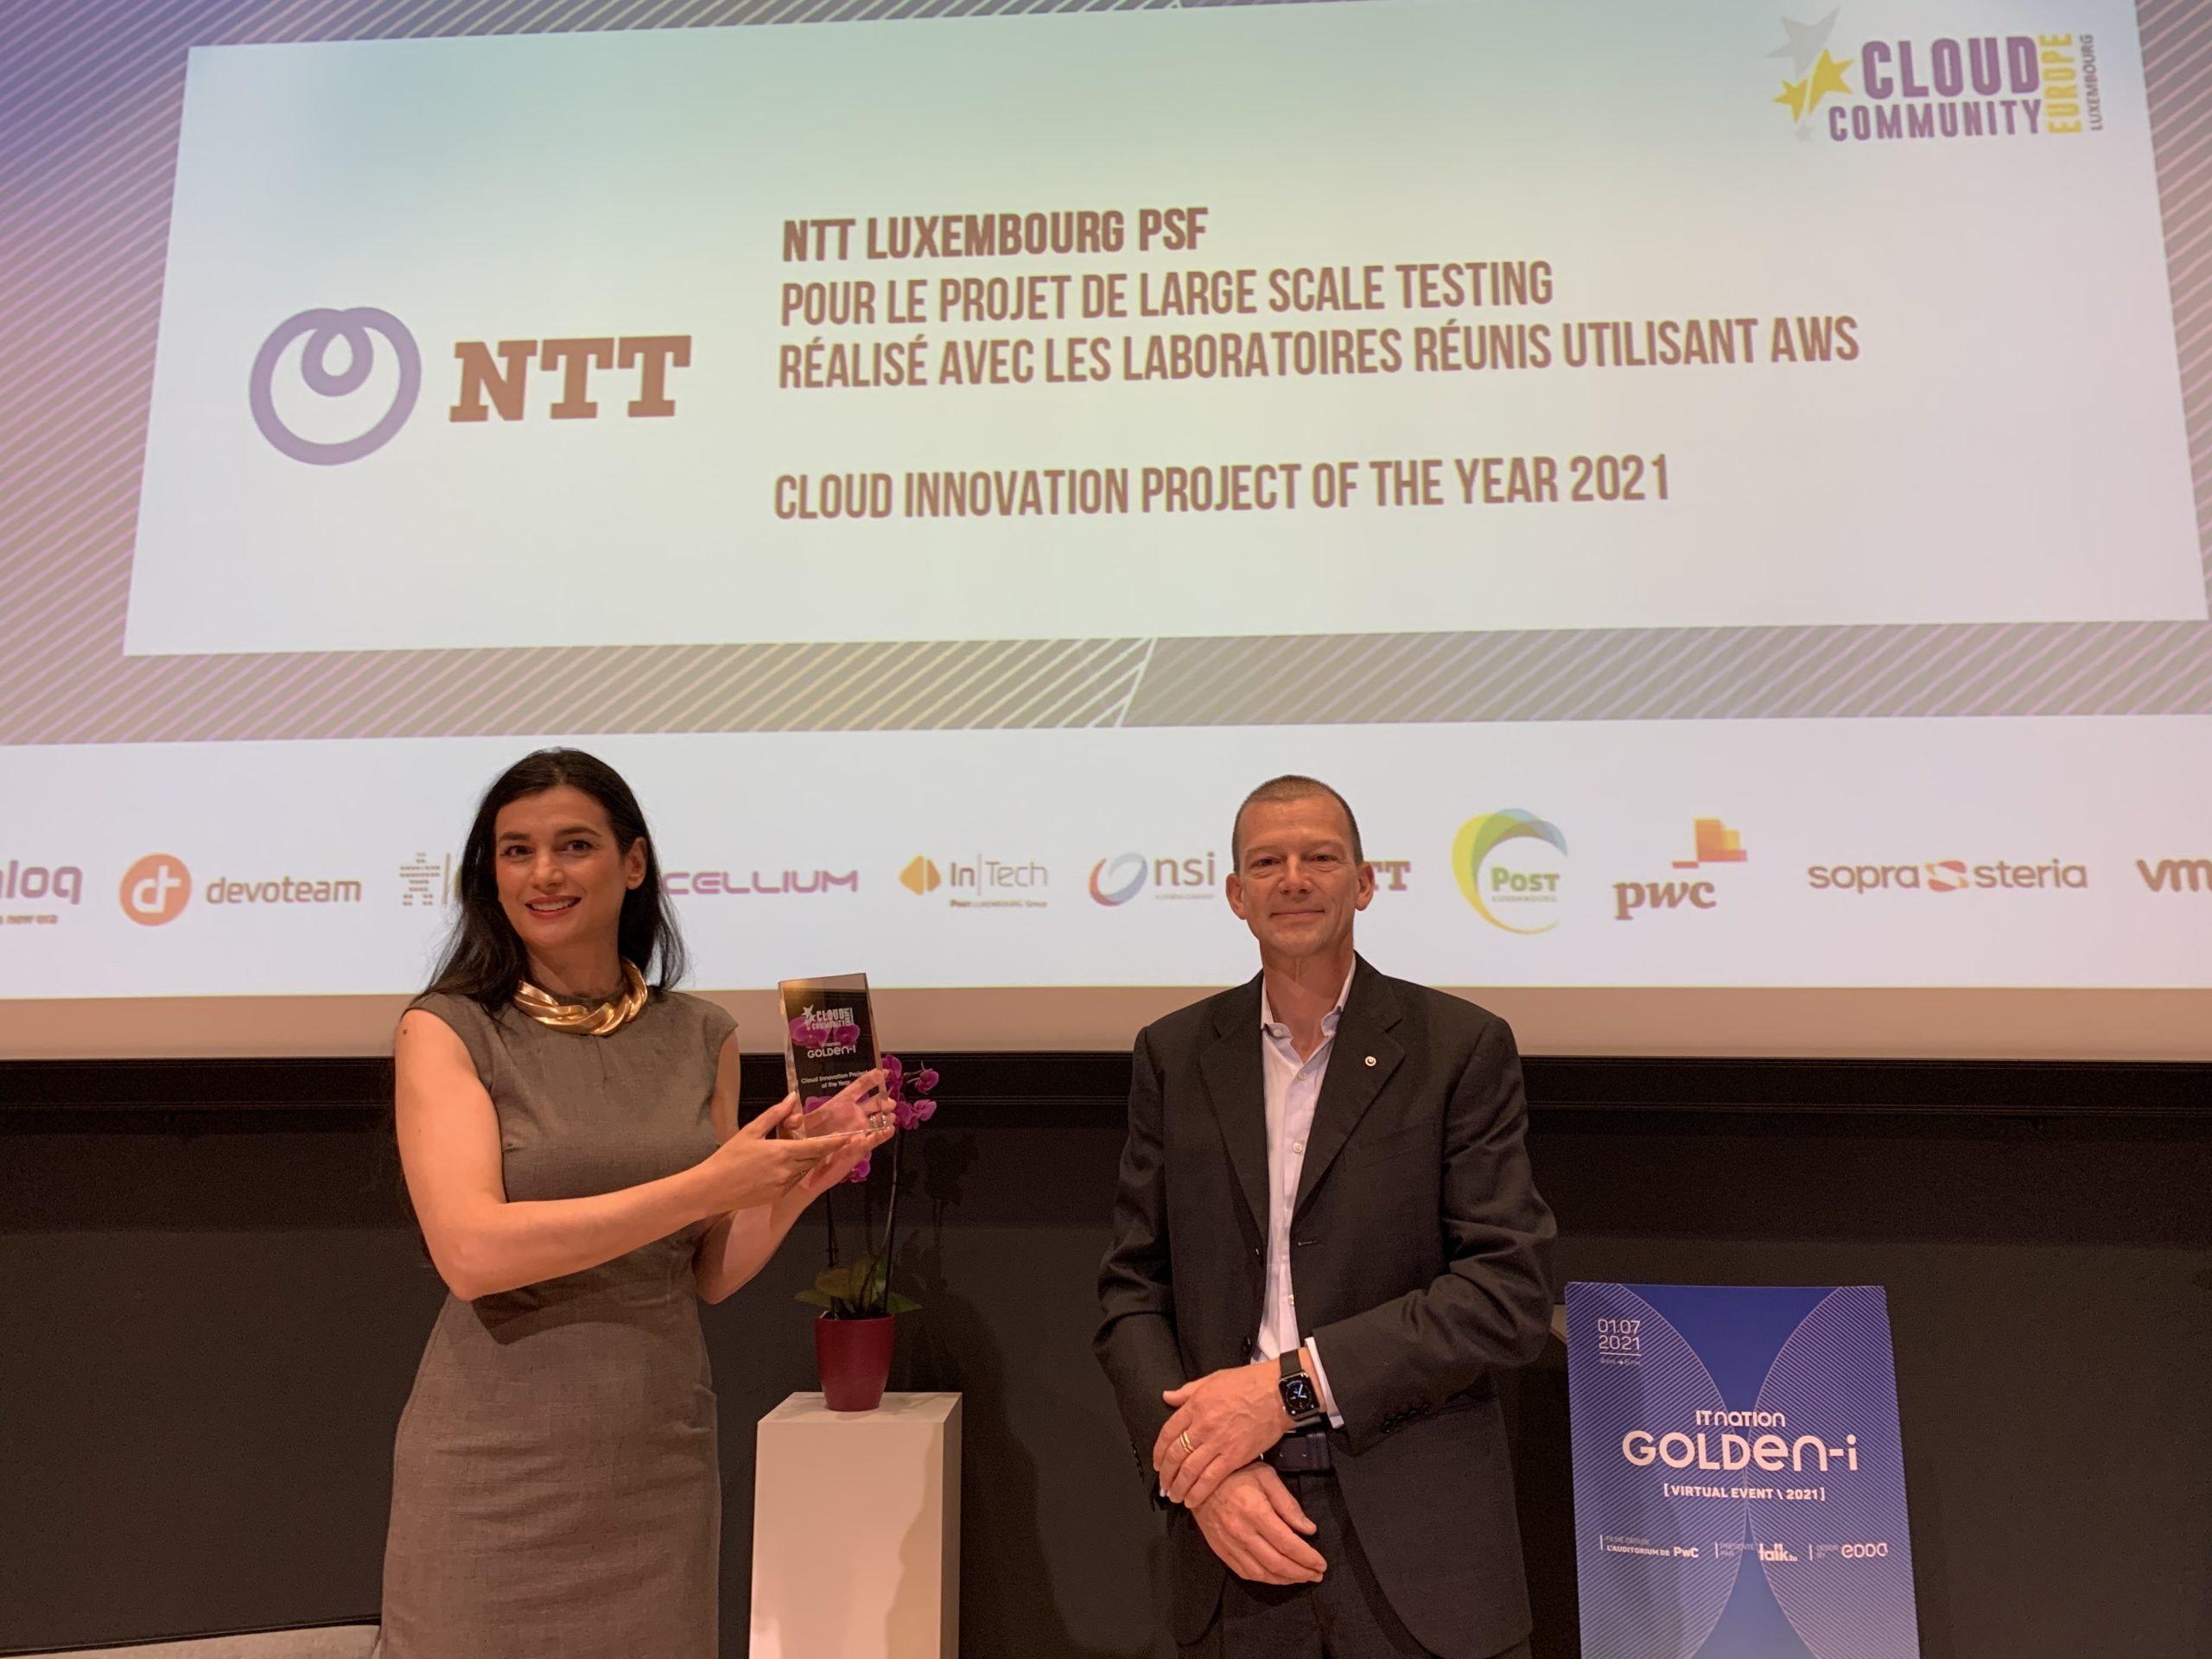 Cloud Innovation Project of the Year_NTT Luxembourg PSF